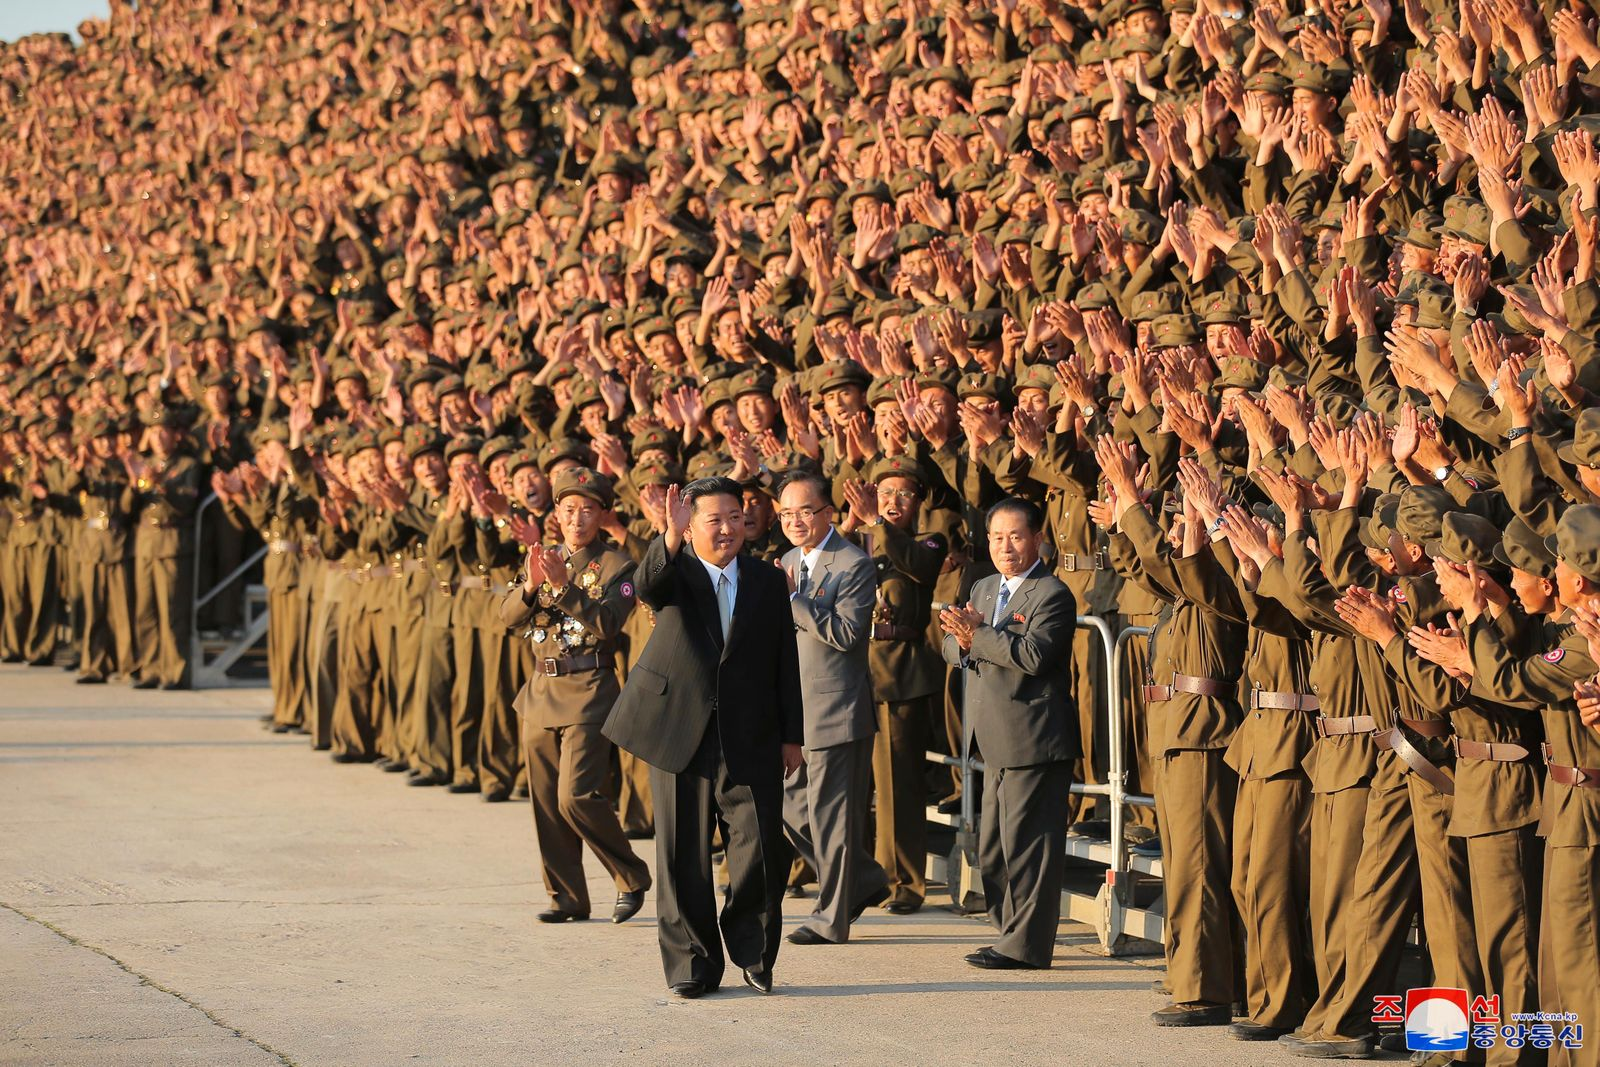 North Korea celebrates 73rd founding anniversary of the country